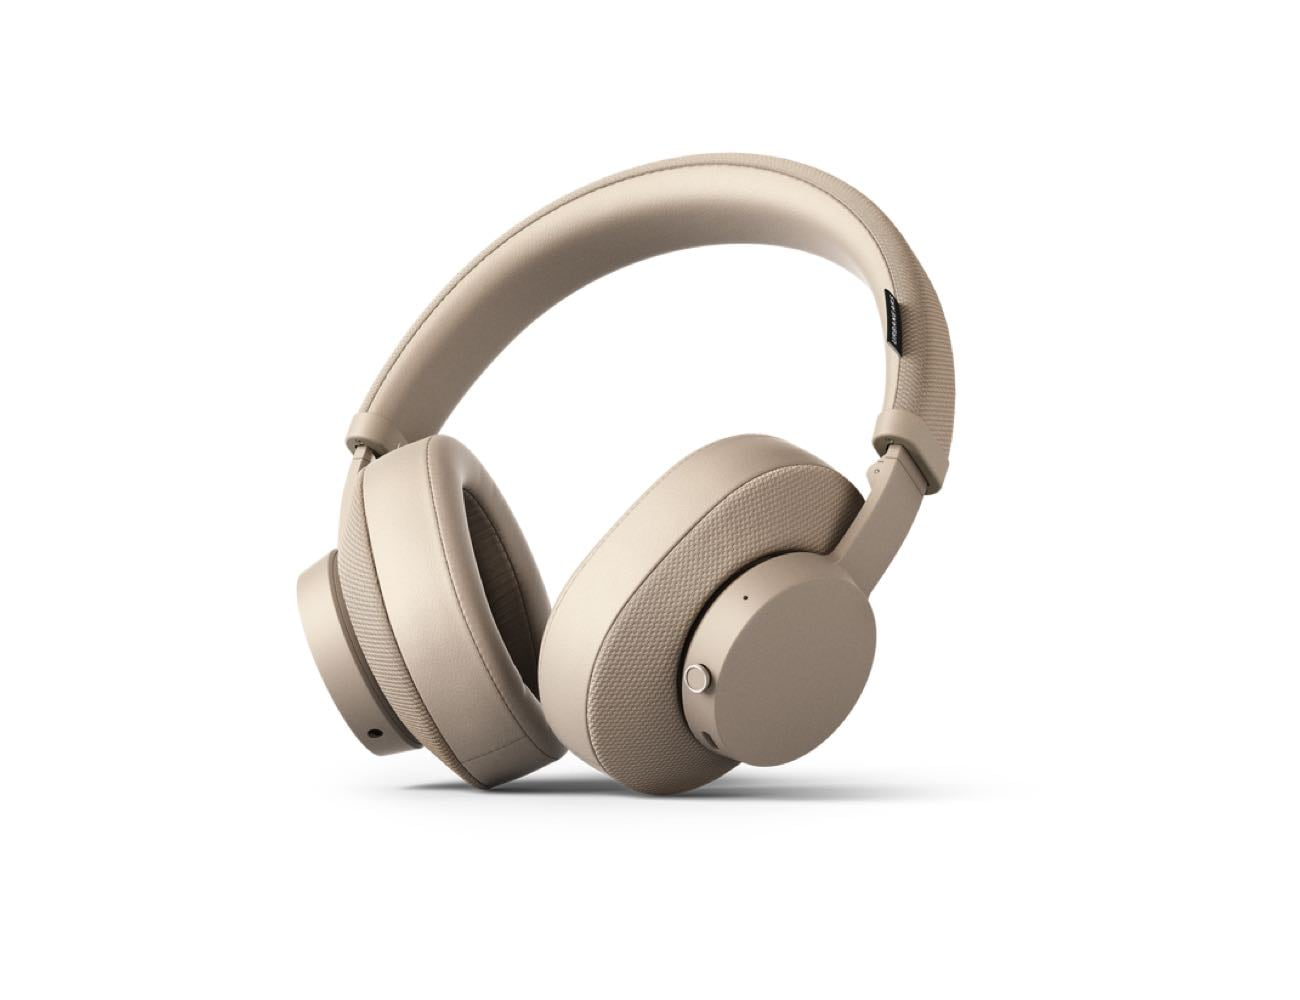 These oversized Bluetooth headphones play music for more